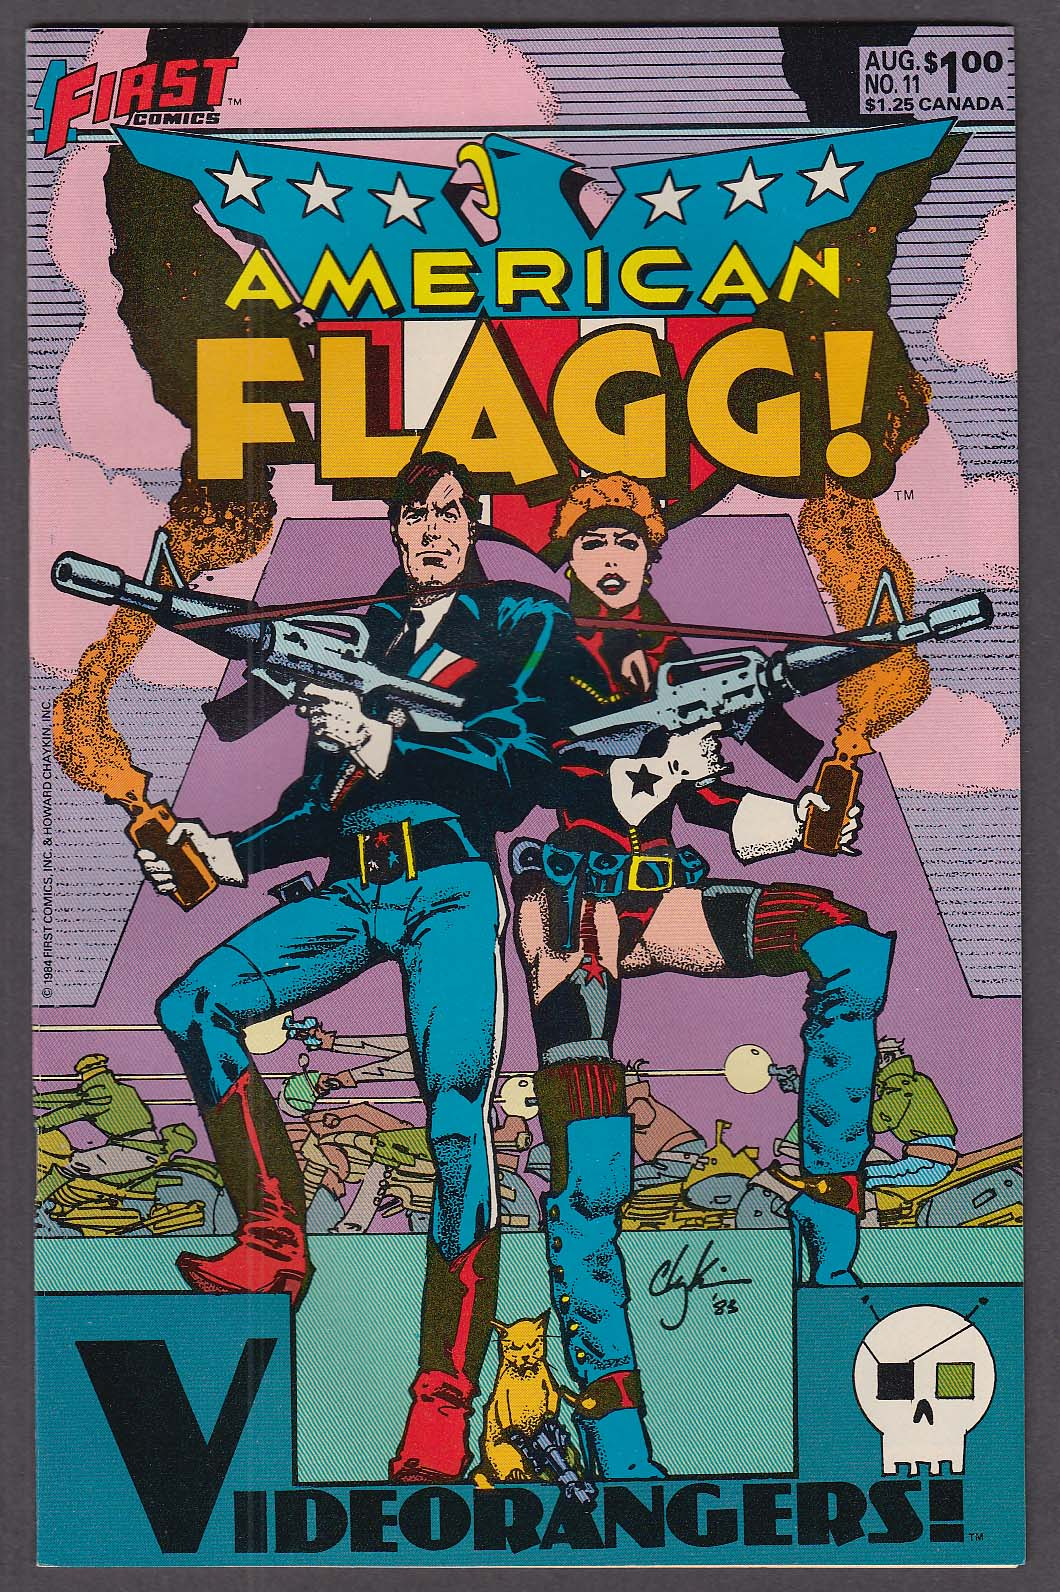 AMERICAN FLAGG! #11 First comic book 8 1984